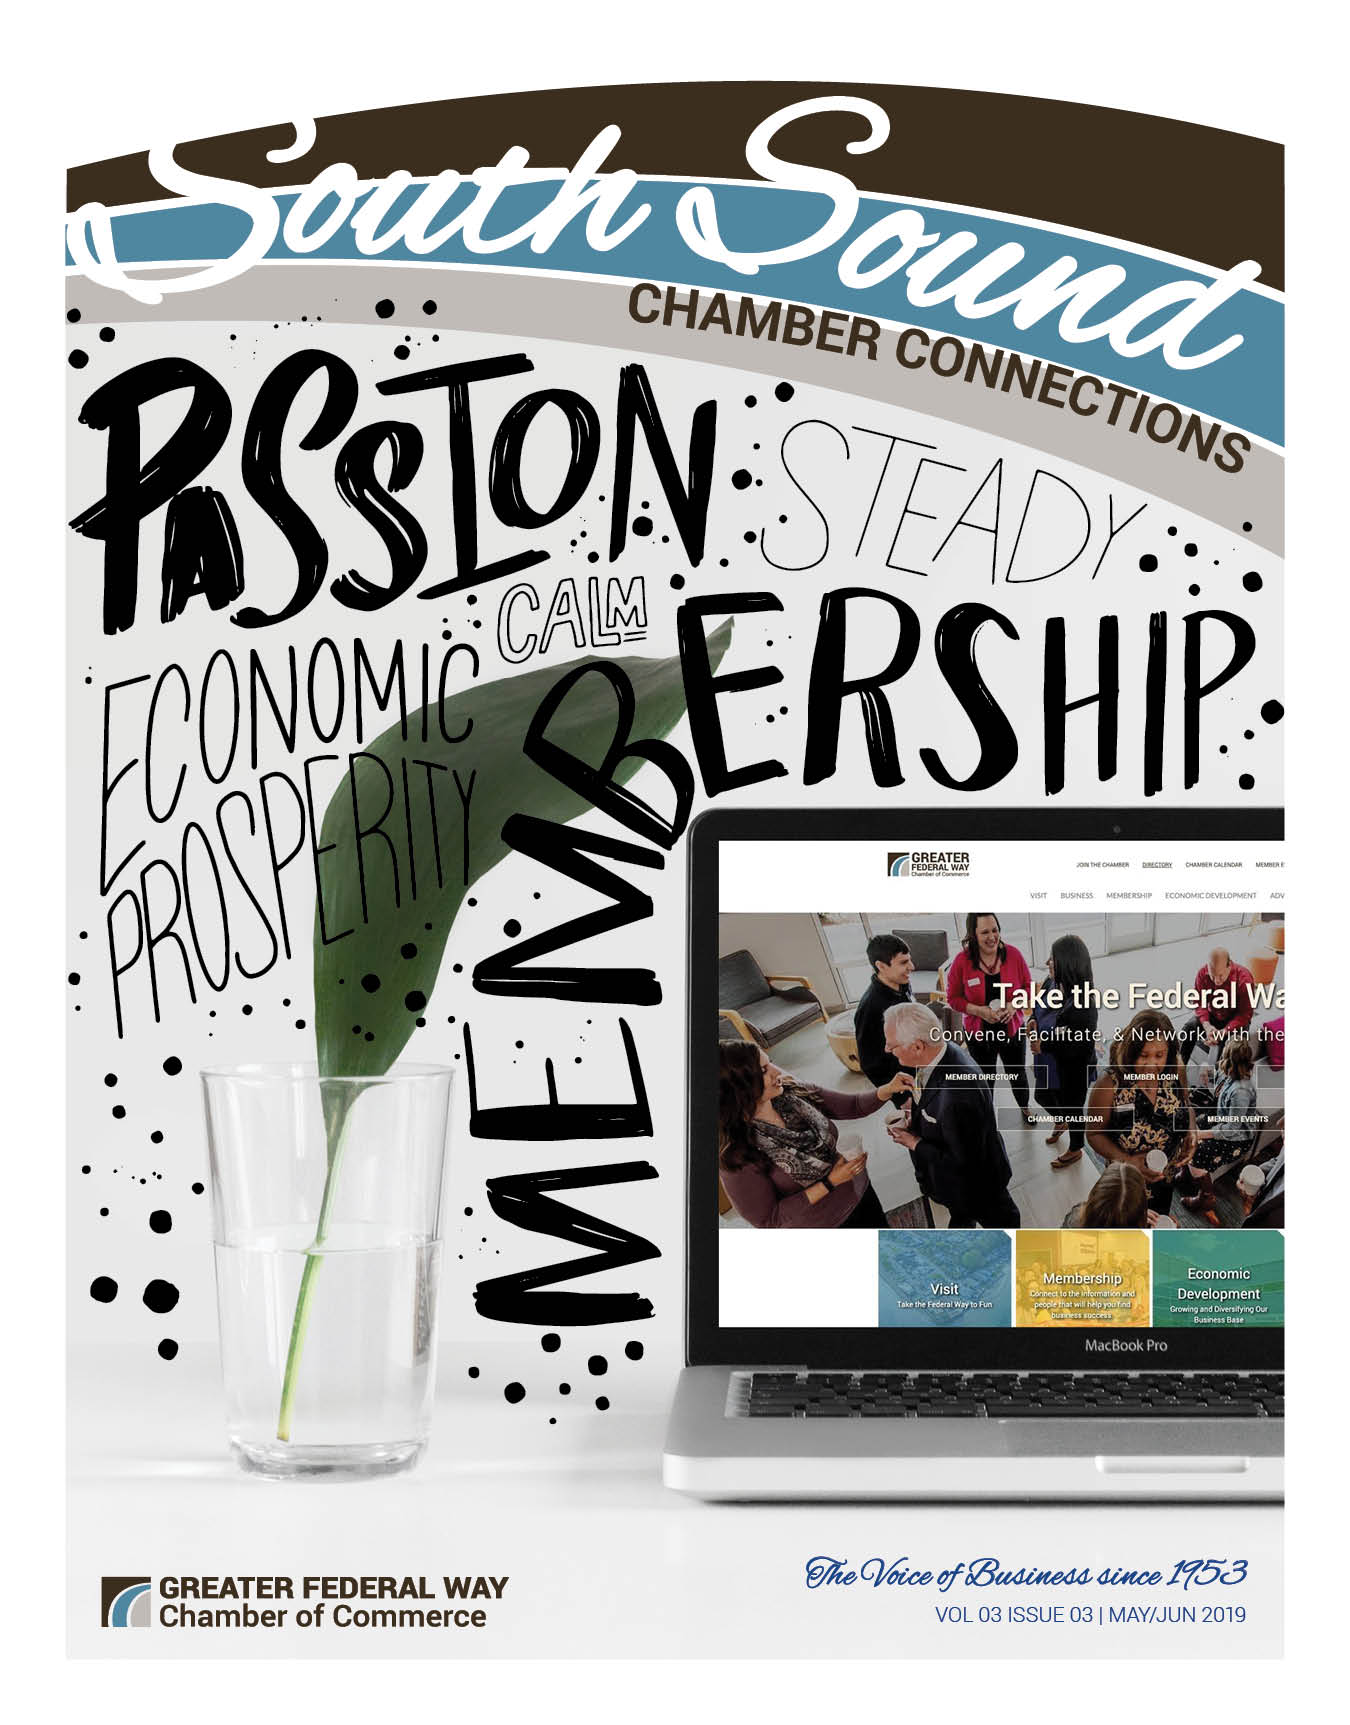 South Sound Chamber Connections - May/Jun 2019 Issue Cover